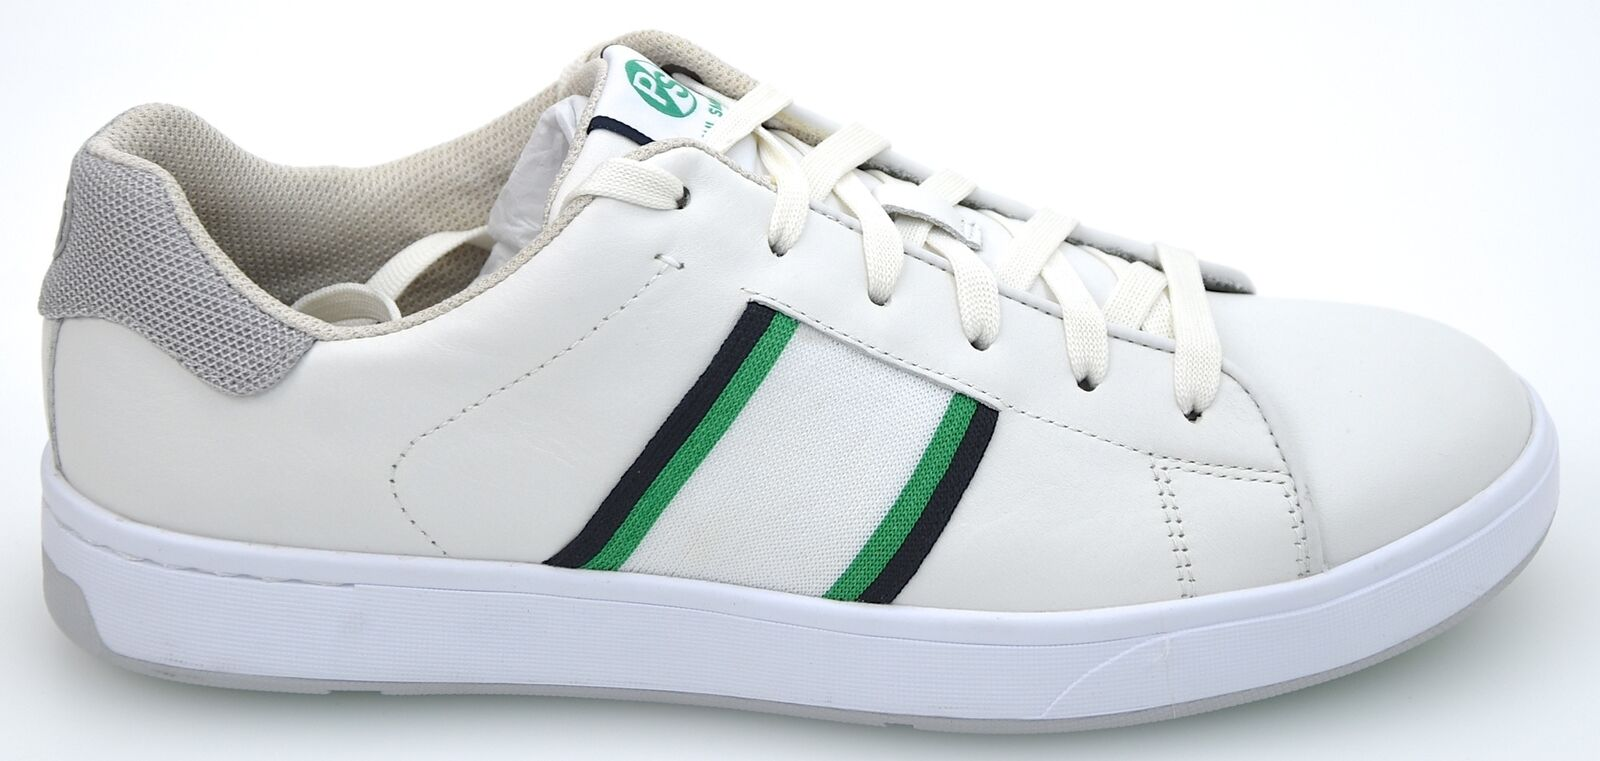 PS PAUL SMITH MAN SNEAKER SHOES FREE CASUAL FREE SHOES TIME LEATHER SSXD T134 MLUX LAWN 264625